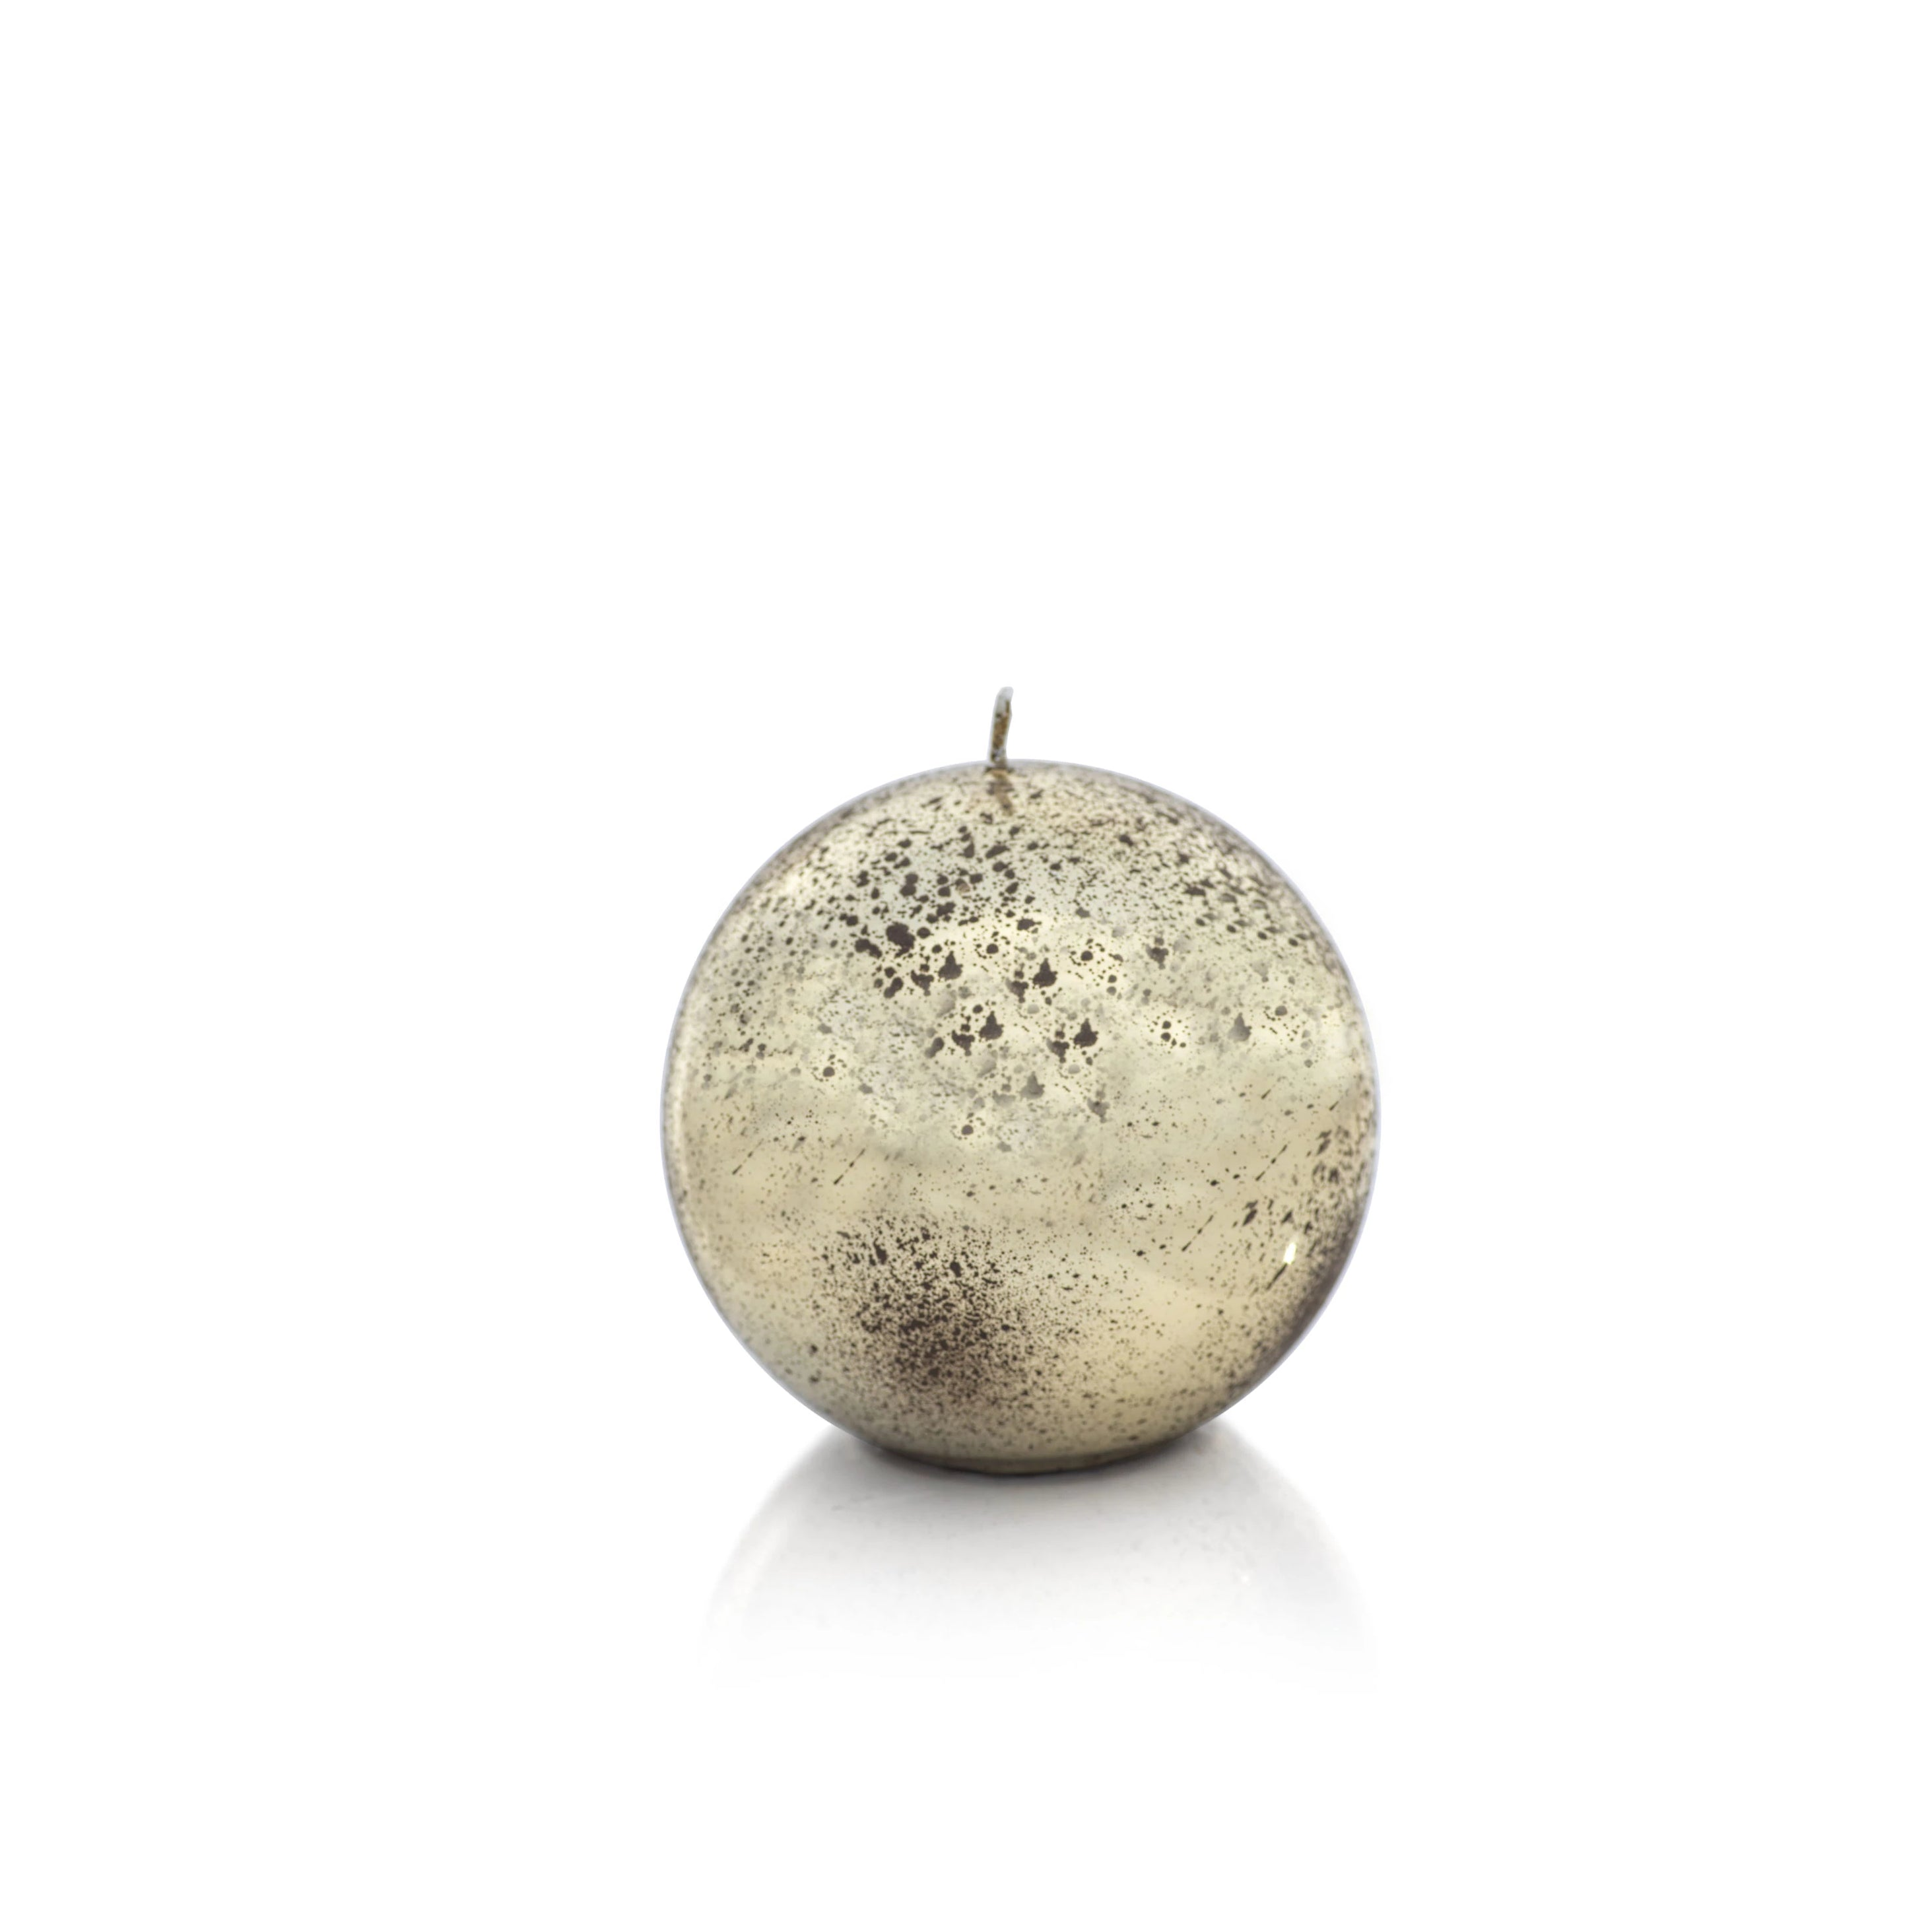 Shiny Metallic Ball Candle - Antique Gold